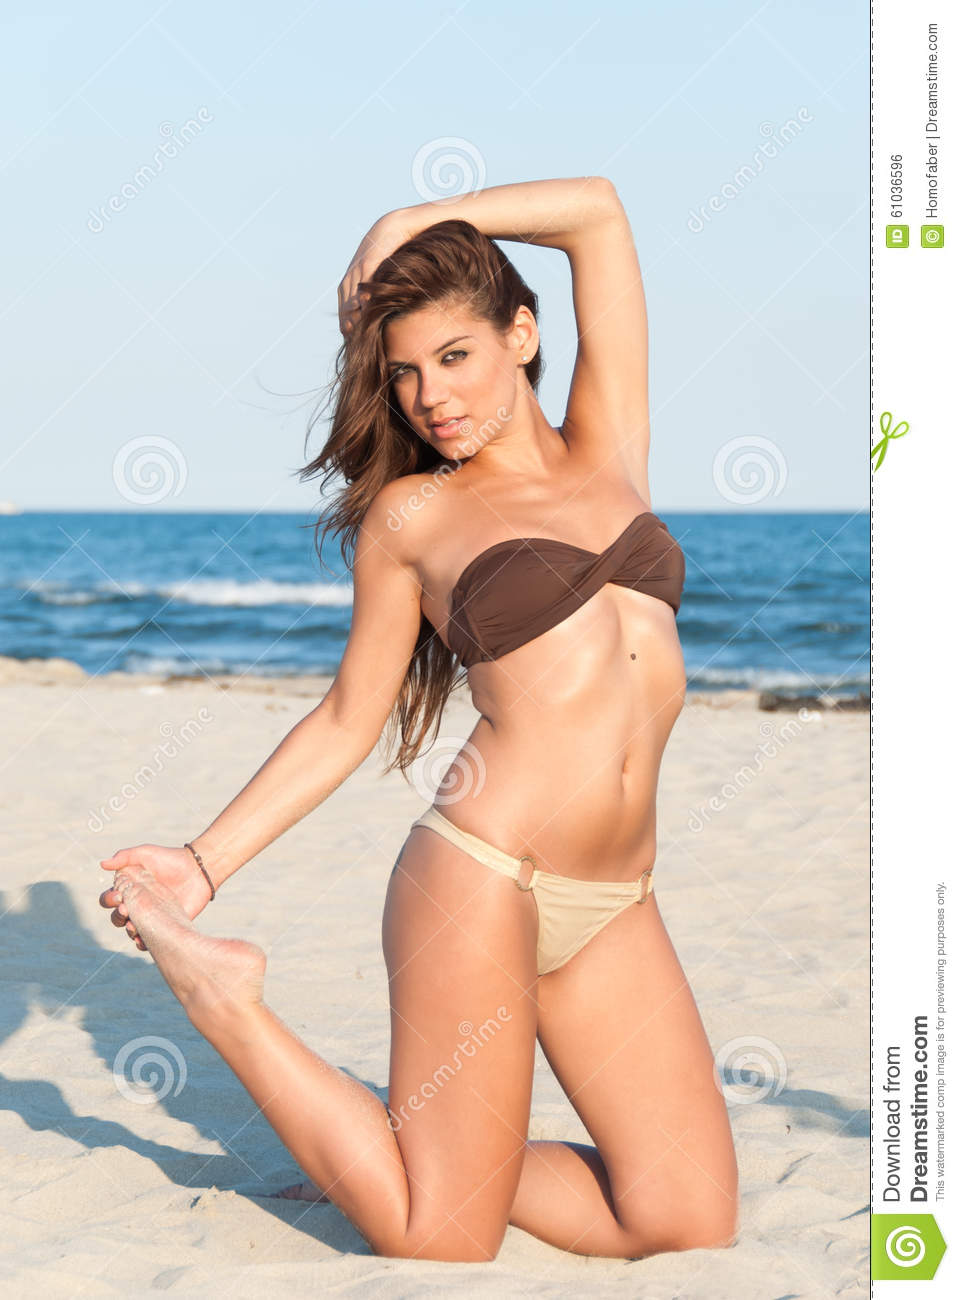 6c080ba5cfd Beautiful bikini model posing on the beach. Wear two pieces swimsuit,  attractive body with brunette long hair. Kneeling on sand, holding hair and  toes, ...